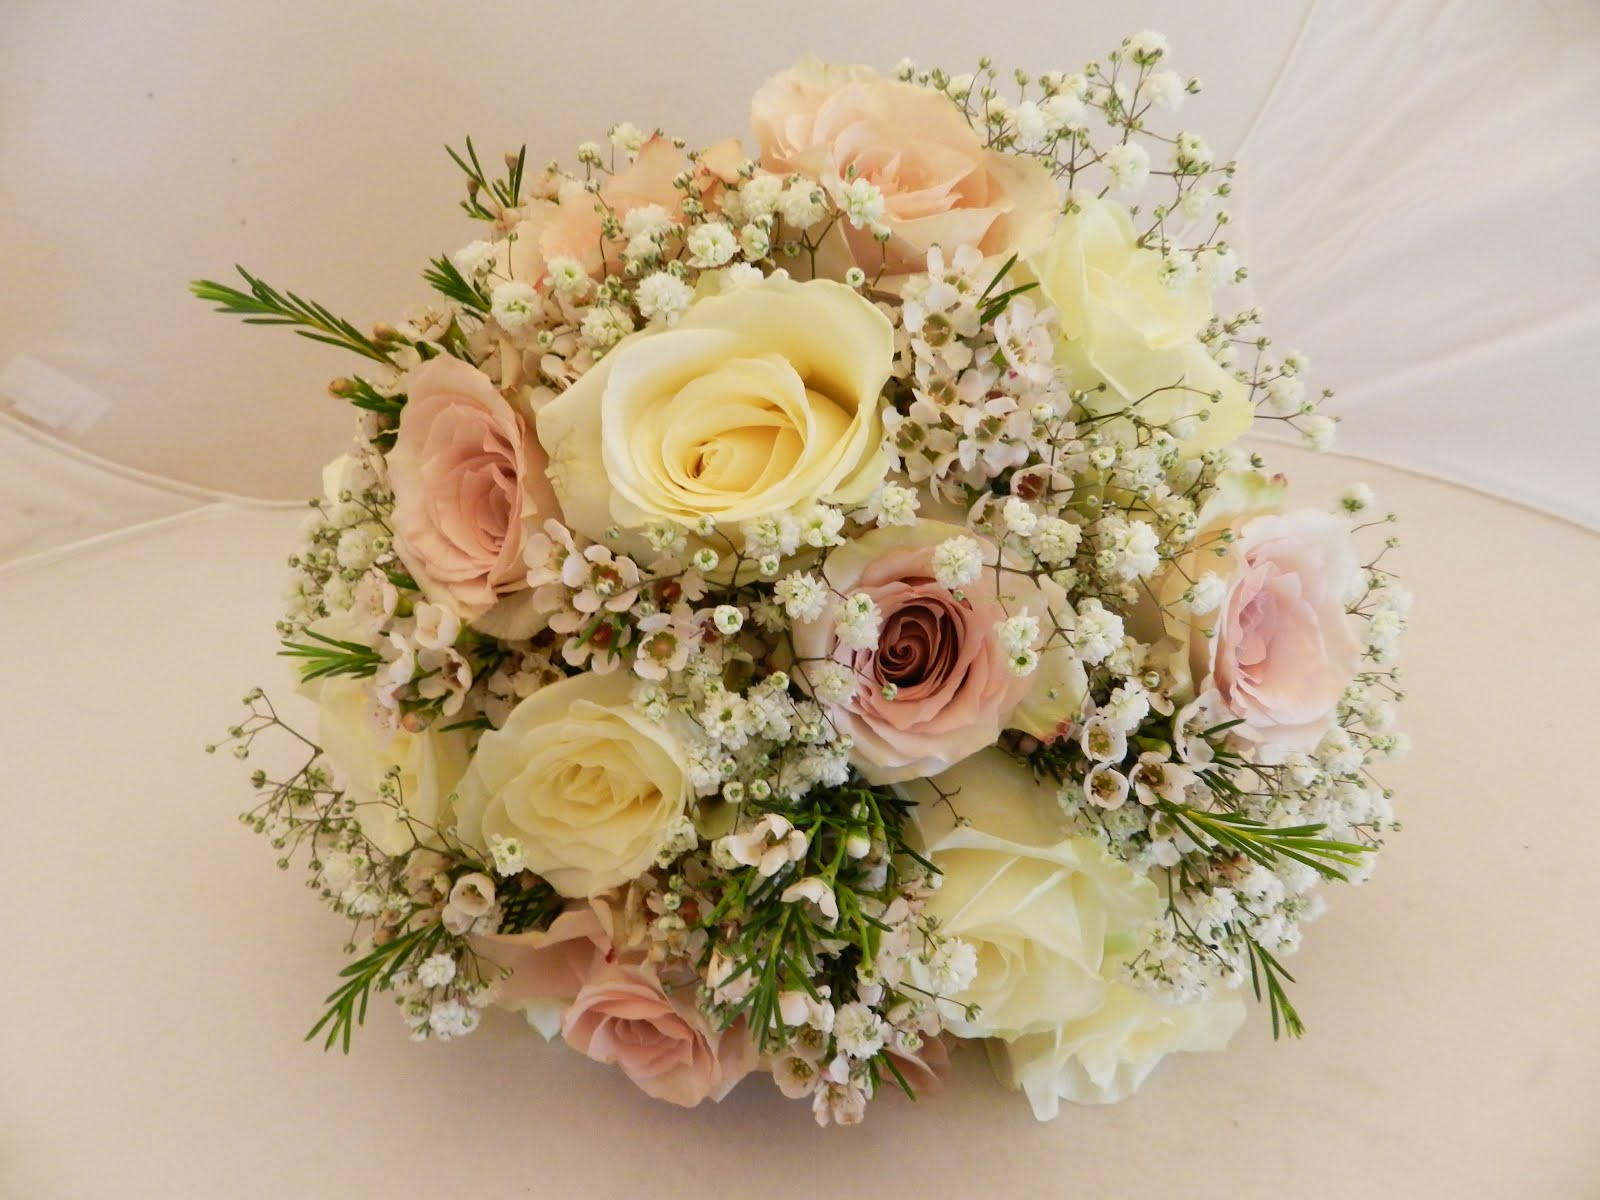 Sandras flower studio pretty ivory and blush wedding flowers the brides bouquet was a hand tie posy of avalanche roses teamed with quicksand roses gyp and pink wax flower izmirmasajfo